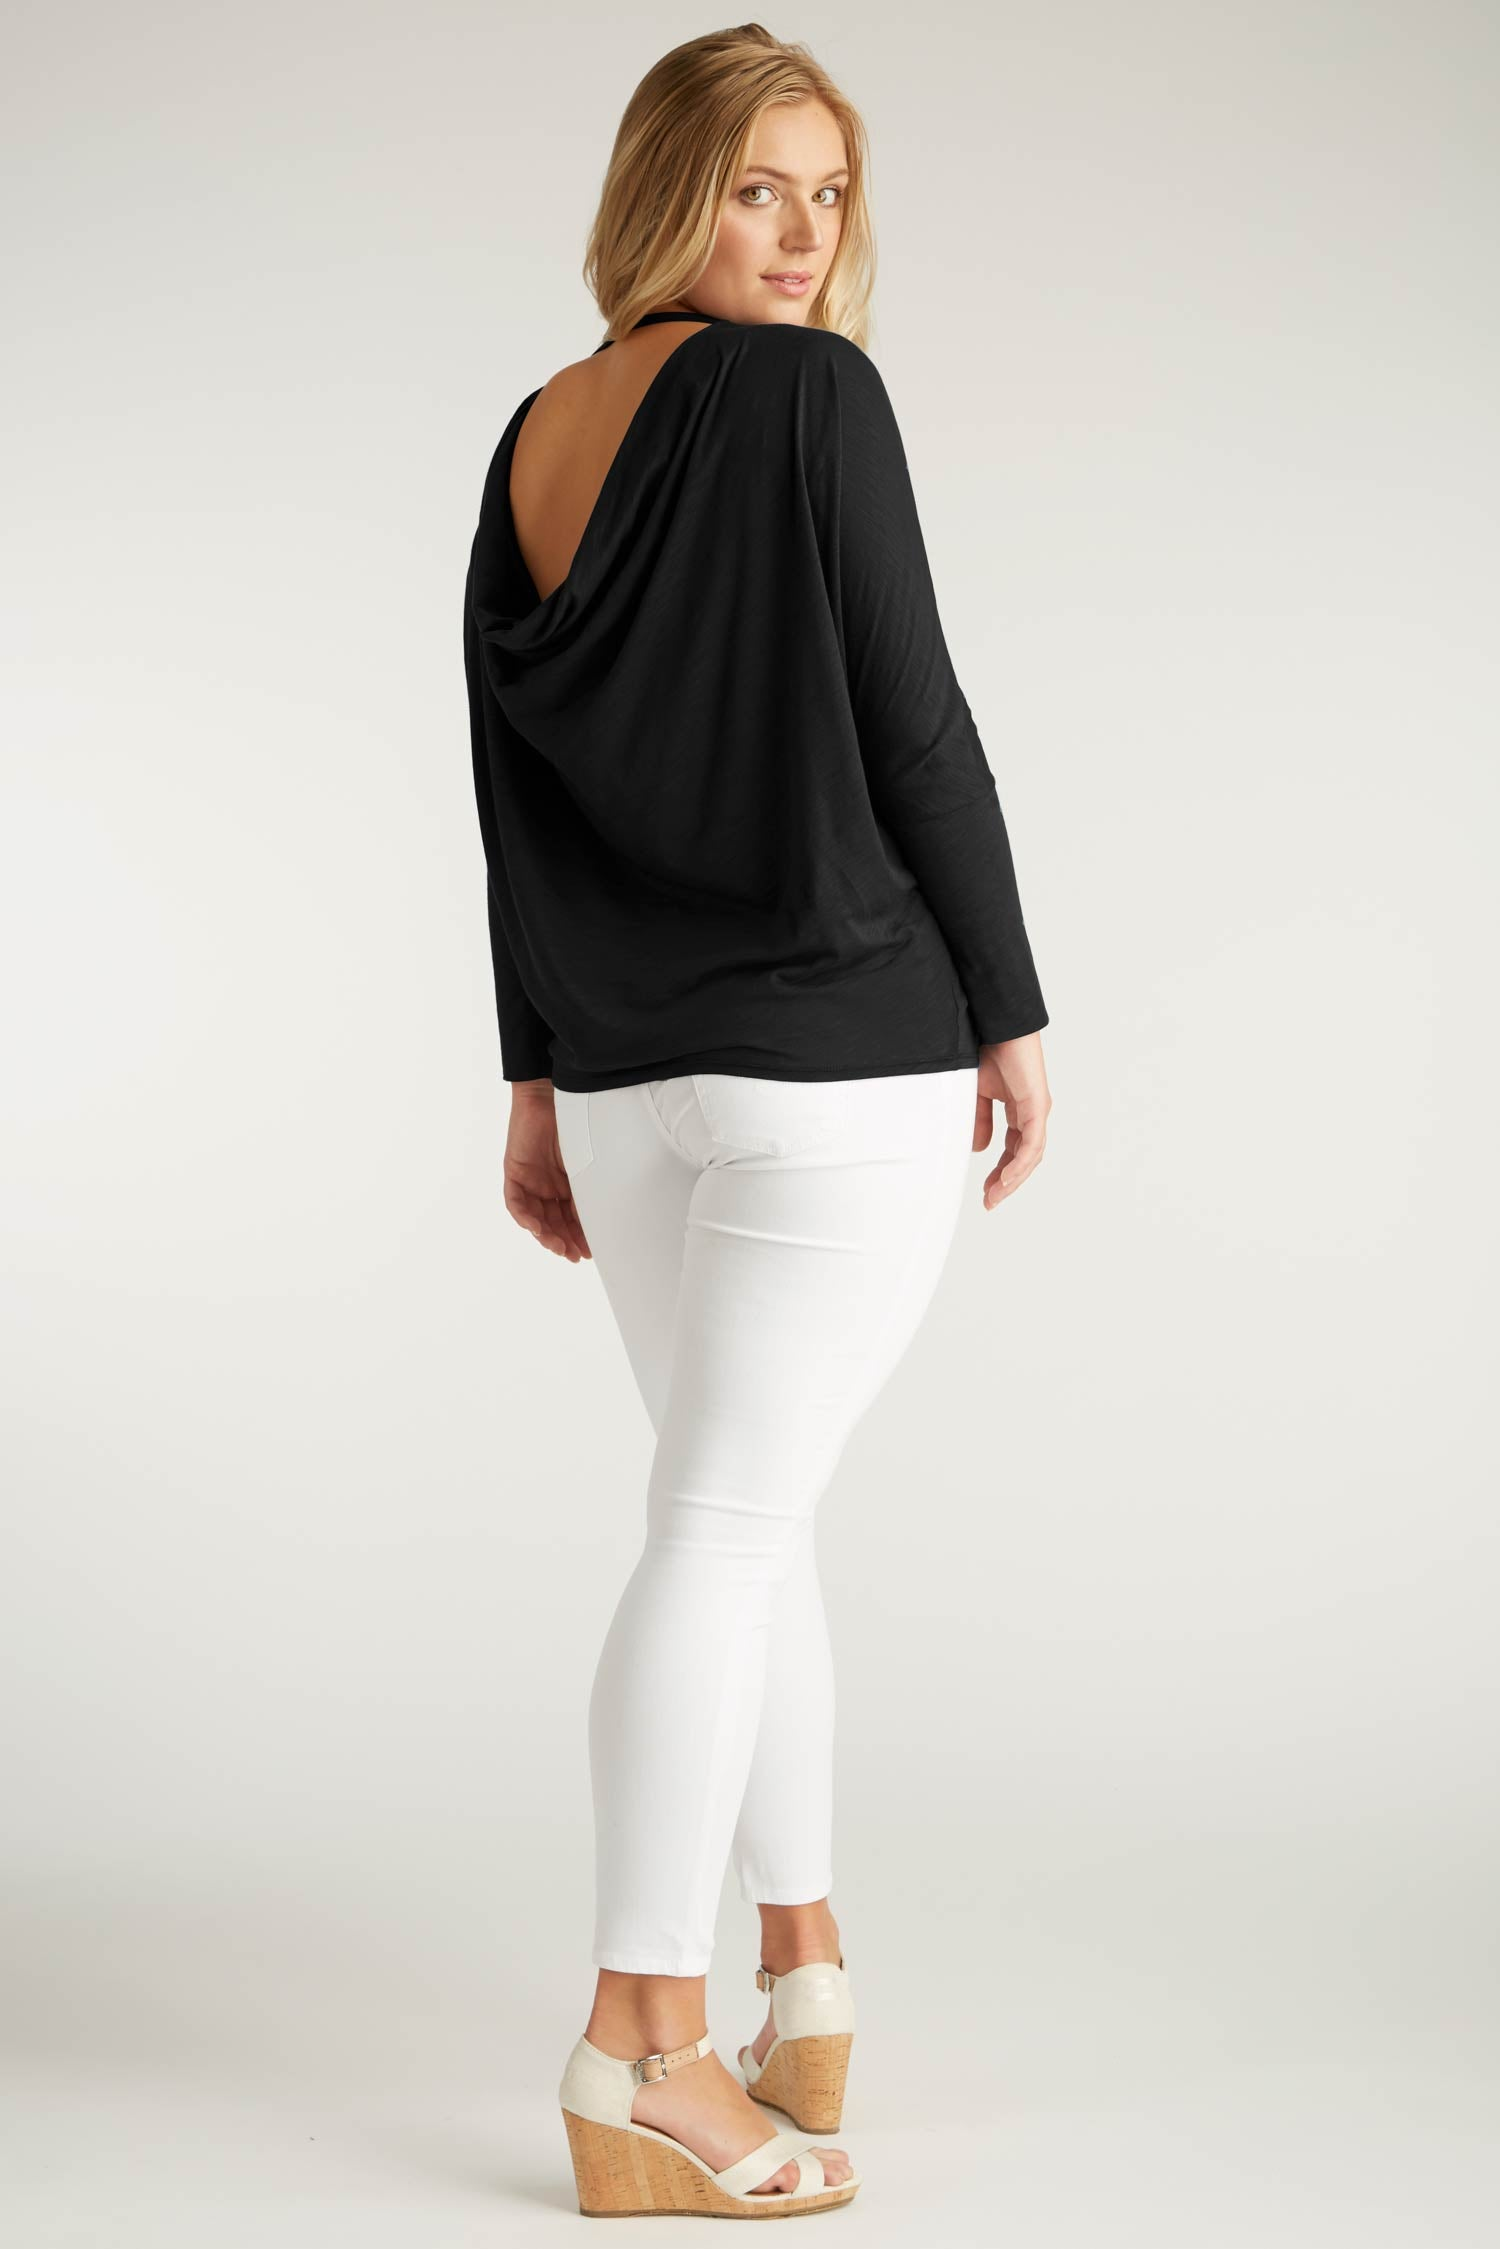 Womens Organic Cotton Top - Reversible Drape Pullover Blouse - Black